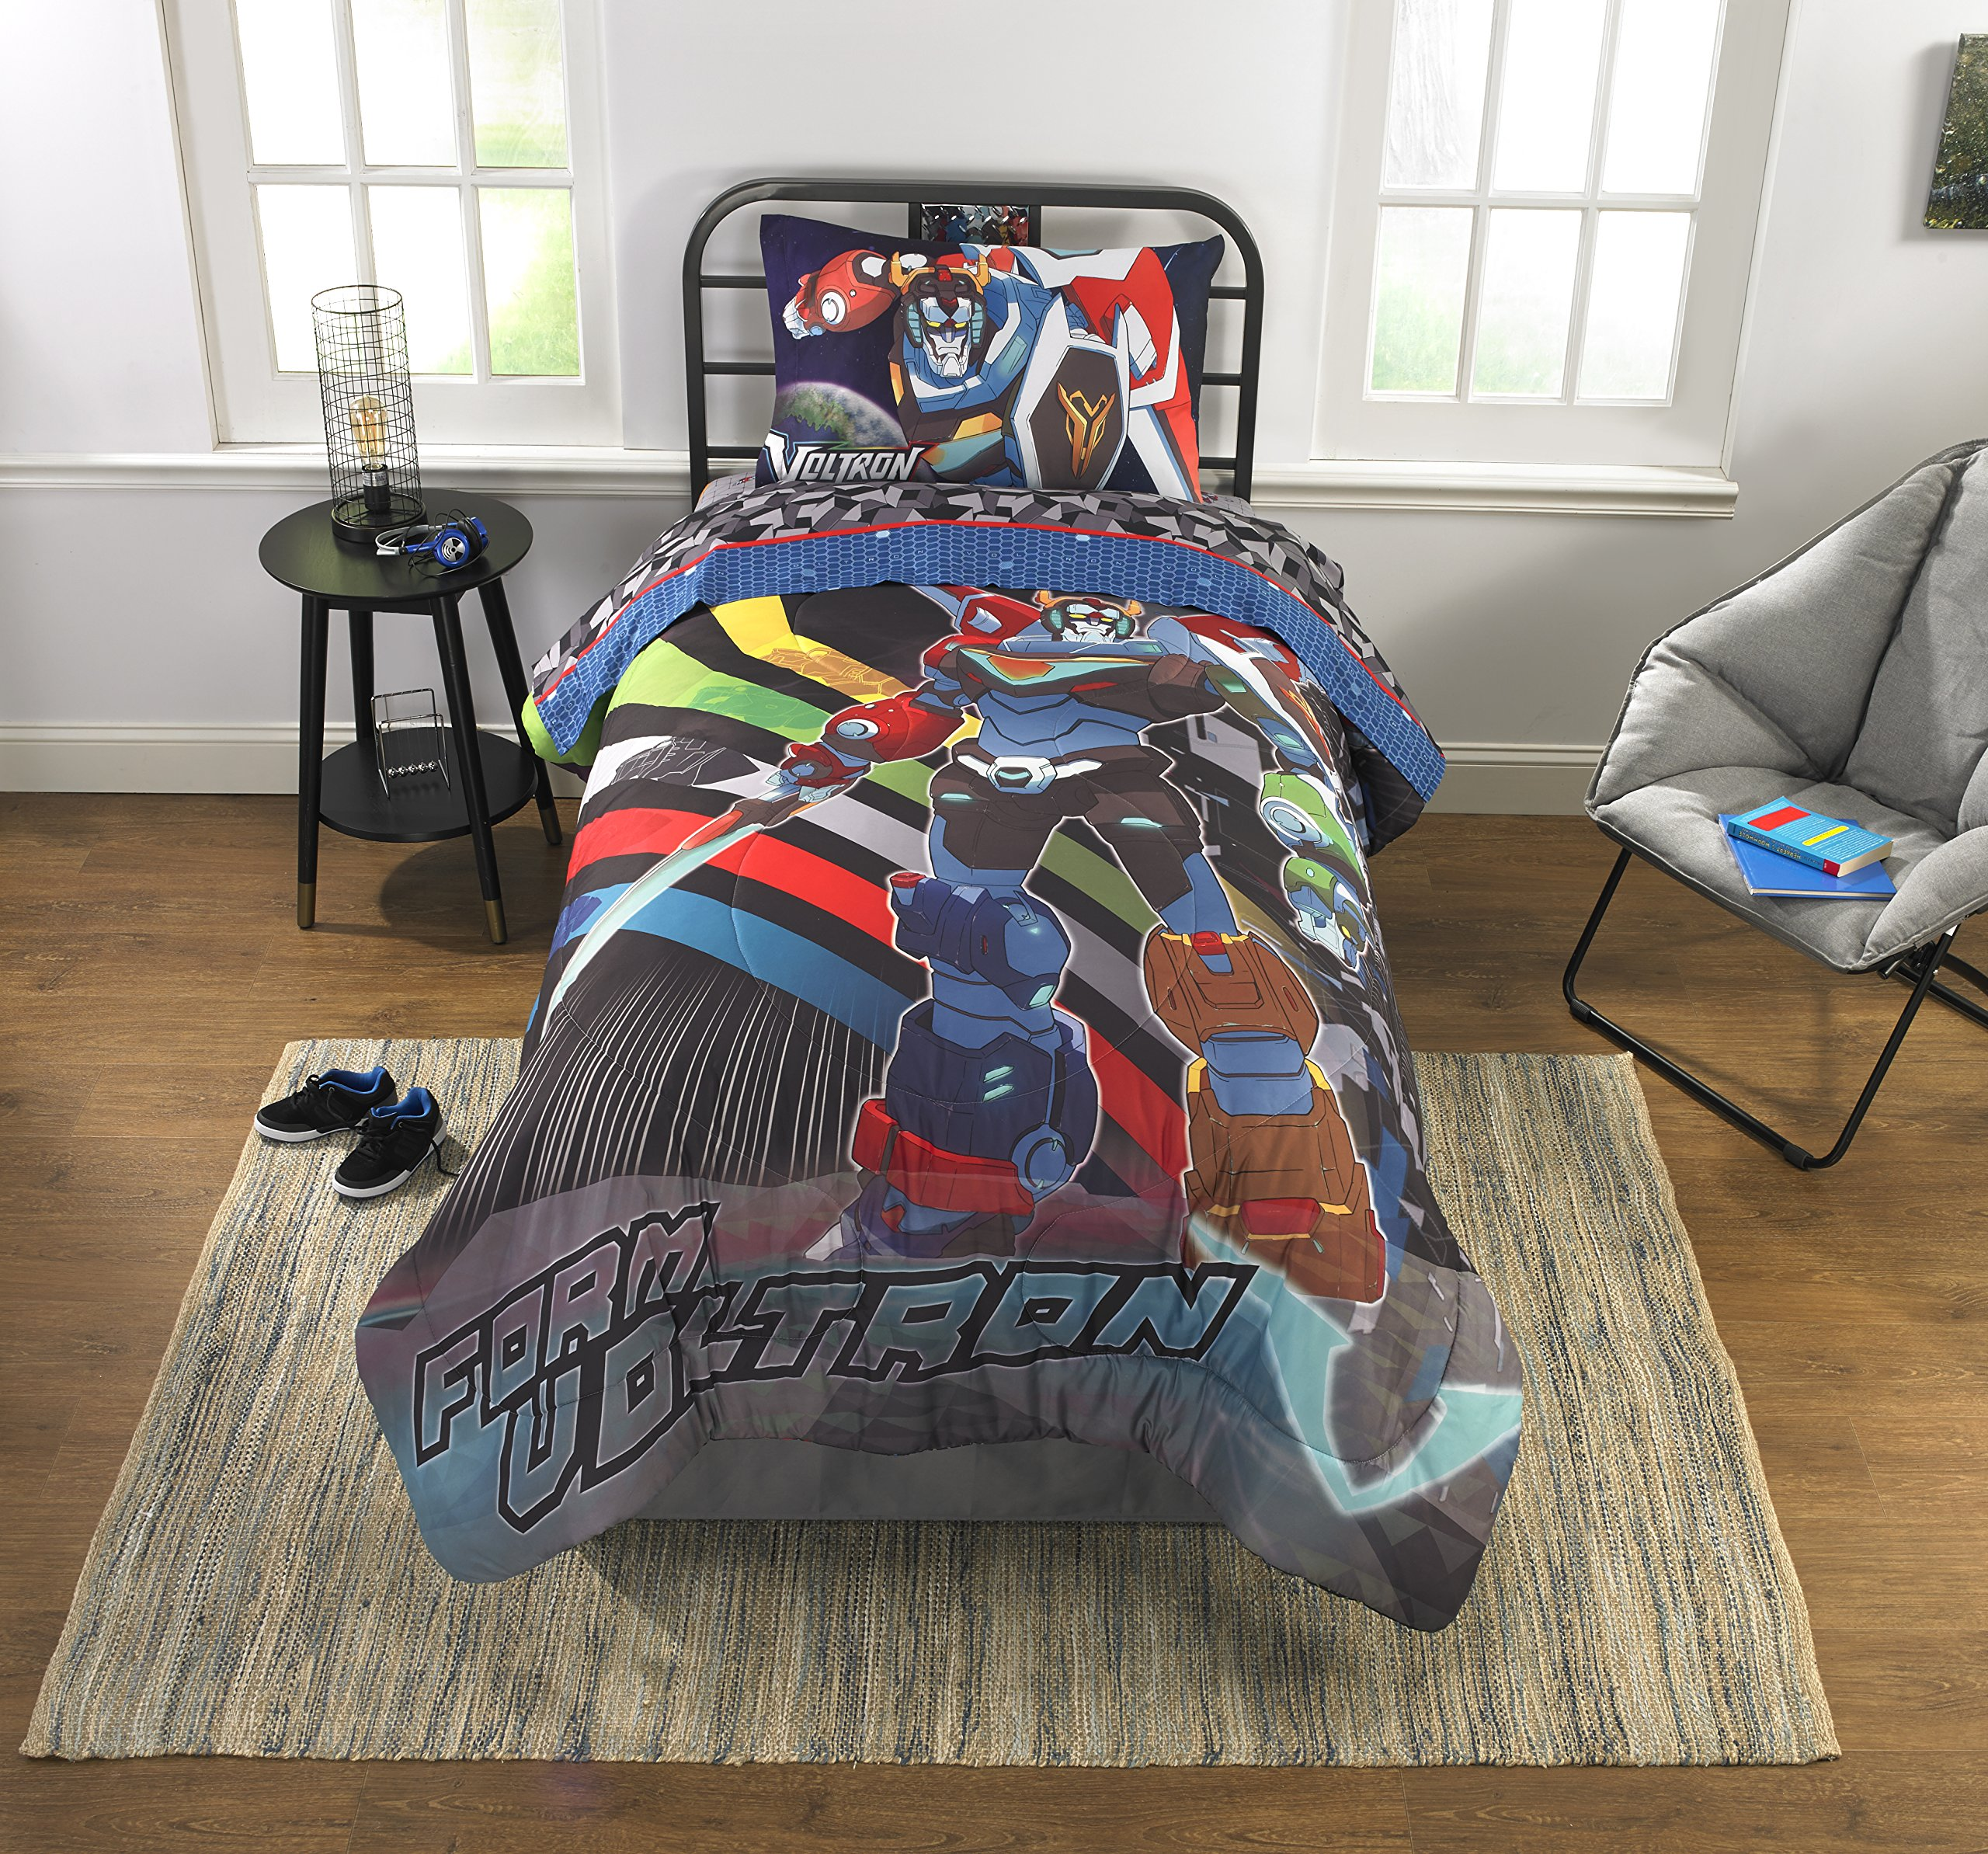 Action Packed,Fun and Exciting Voltron Boys Bedding Reversible Twin Comforter,64'' x 86'',Multicolor,Perfect Gift for Kids/Teen and Fans